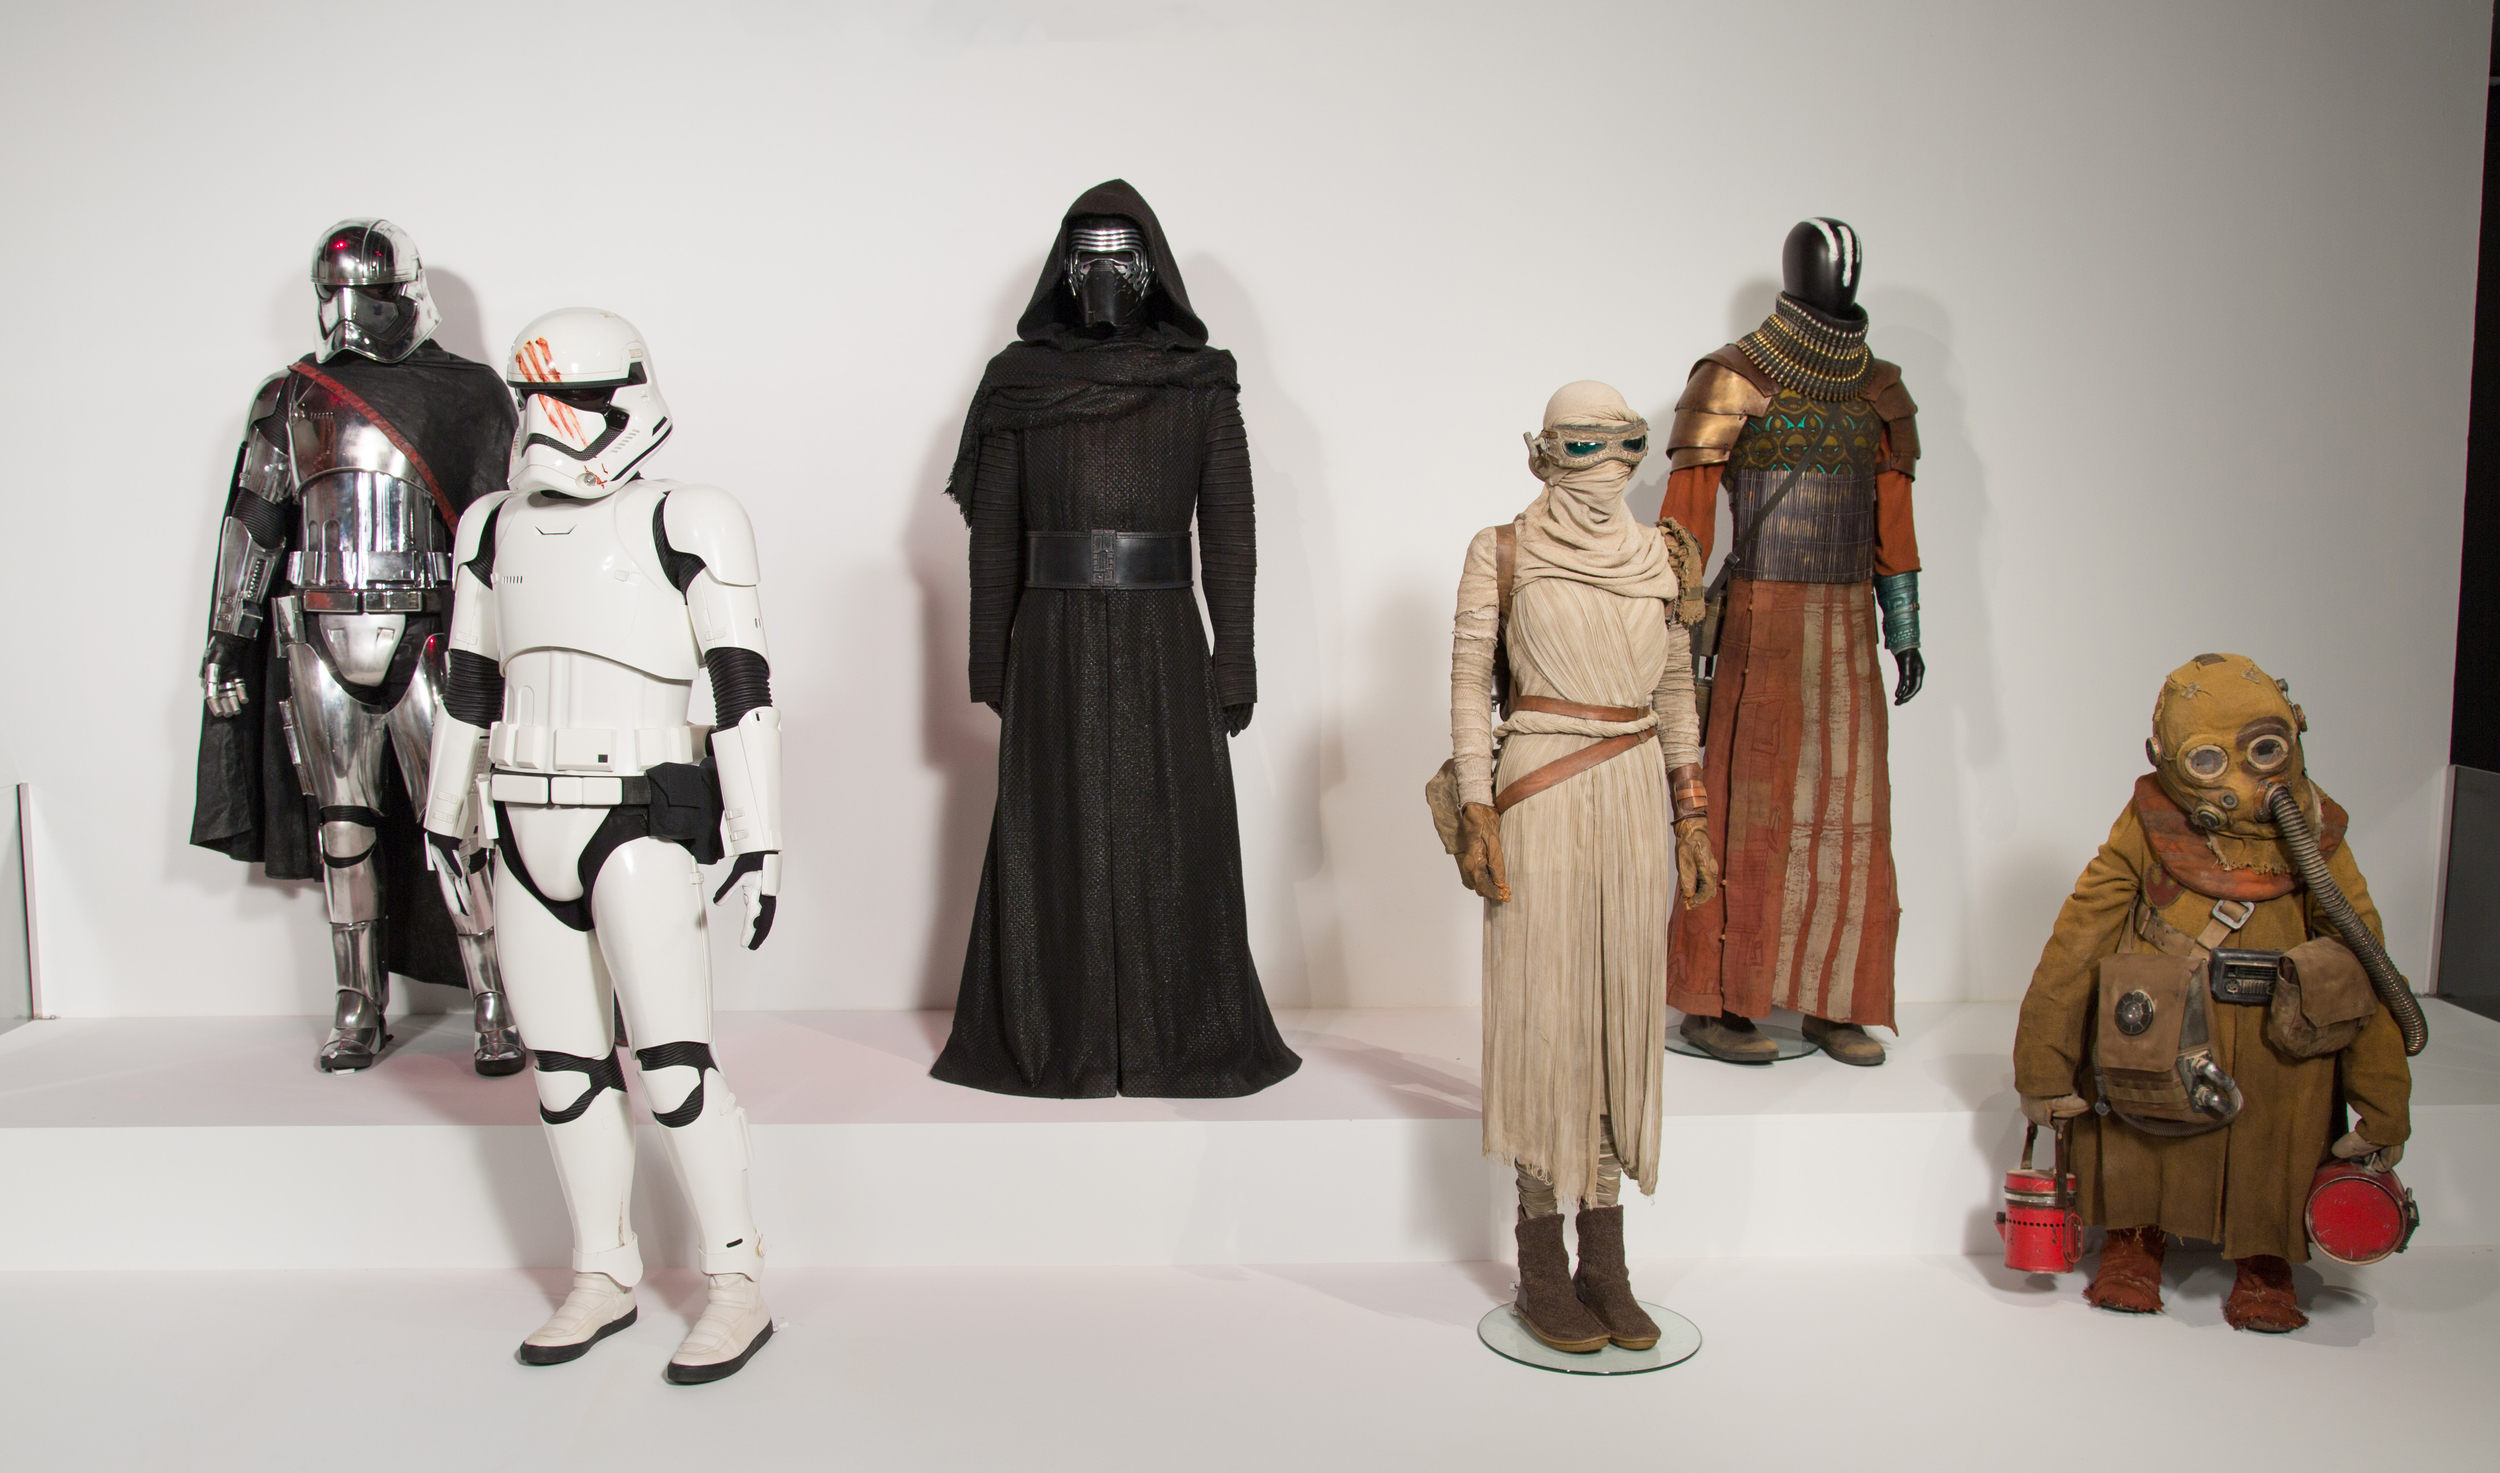 """Star Wars: Episode VII - The Force Awakens"" costumes by Michael Kaplan, . These costumes can be seen in the 24th Annual ""Art of Motion Picture Costume Design"" exhibition, FIDM Museum, Fashion Institute of Design & Merchandising, Los Angeles. The exhibition is free to the public, Tuesday, February 9 through Saturday, April 30, 2016, 10:00 a.m. - 5:00 p.m. .(Photo: Alex J. Berliner/ABImages)"